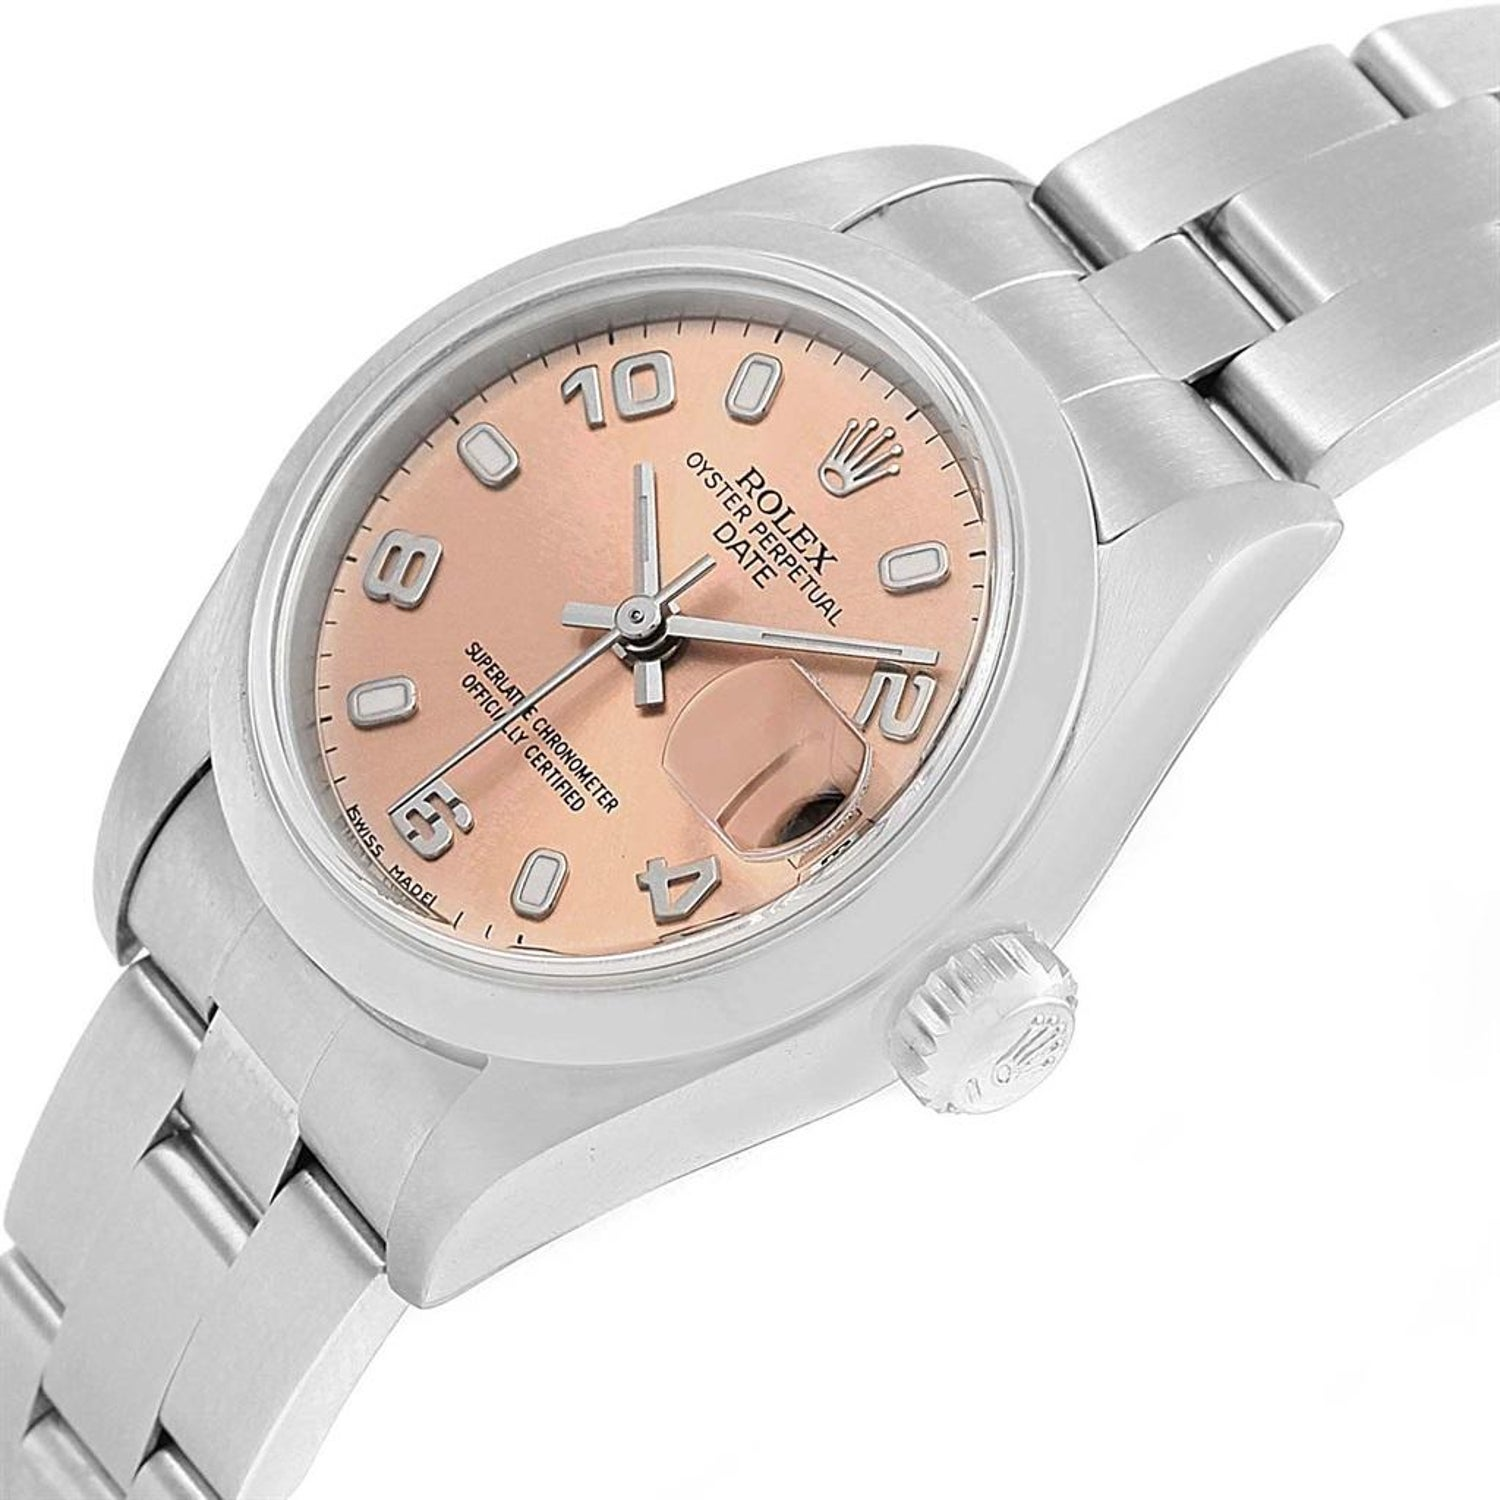 c31a991c0d3 Rolex Date 26 Salmon Dial Oyster Bracelet Steel Ladies Watch 79160 For Sale  at 1stdibs